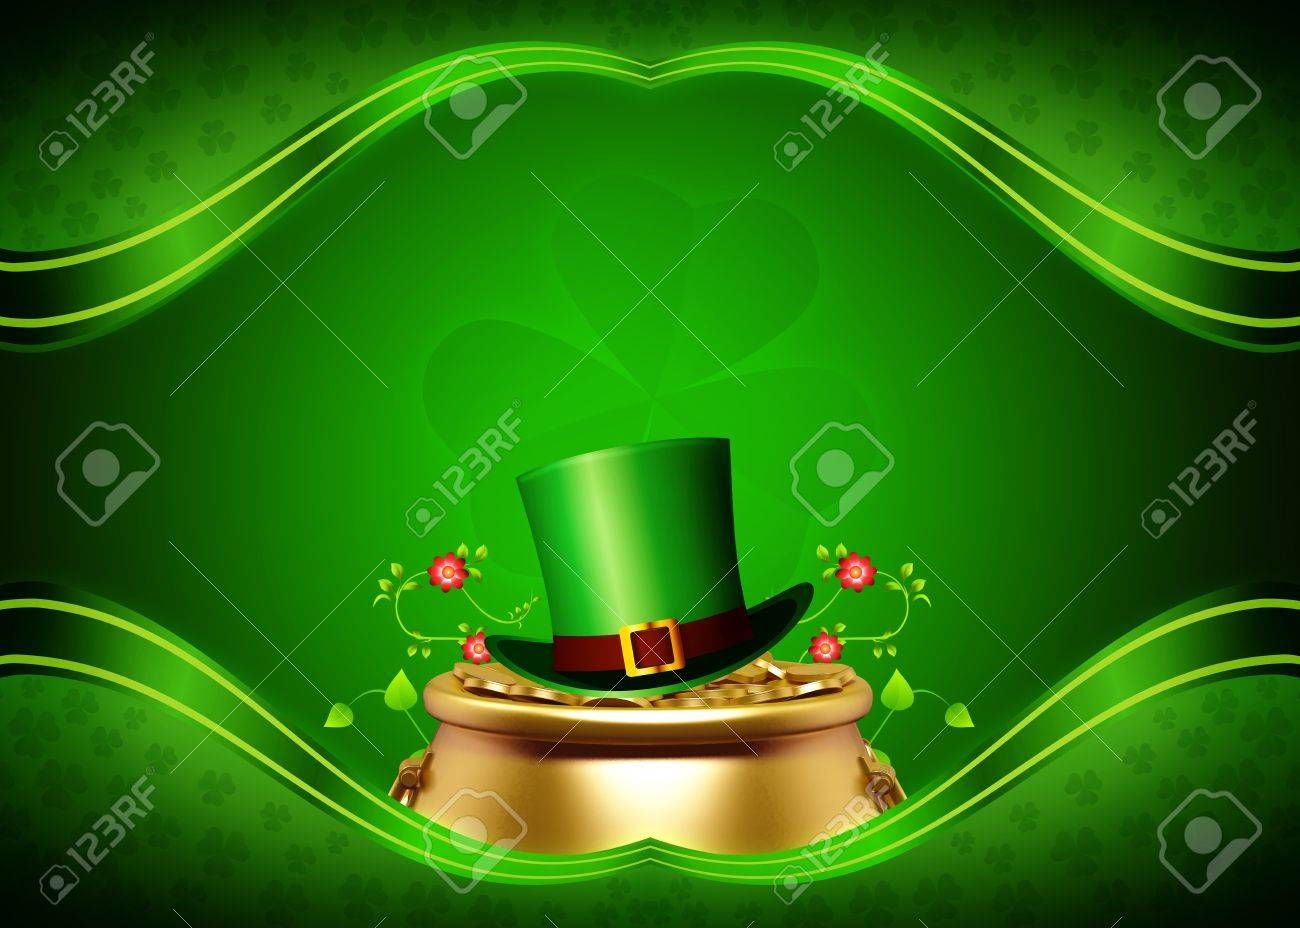 Leprechaun for st patrick s day with golden coins and pot - 19284053